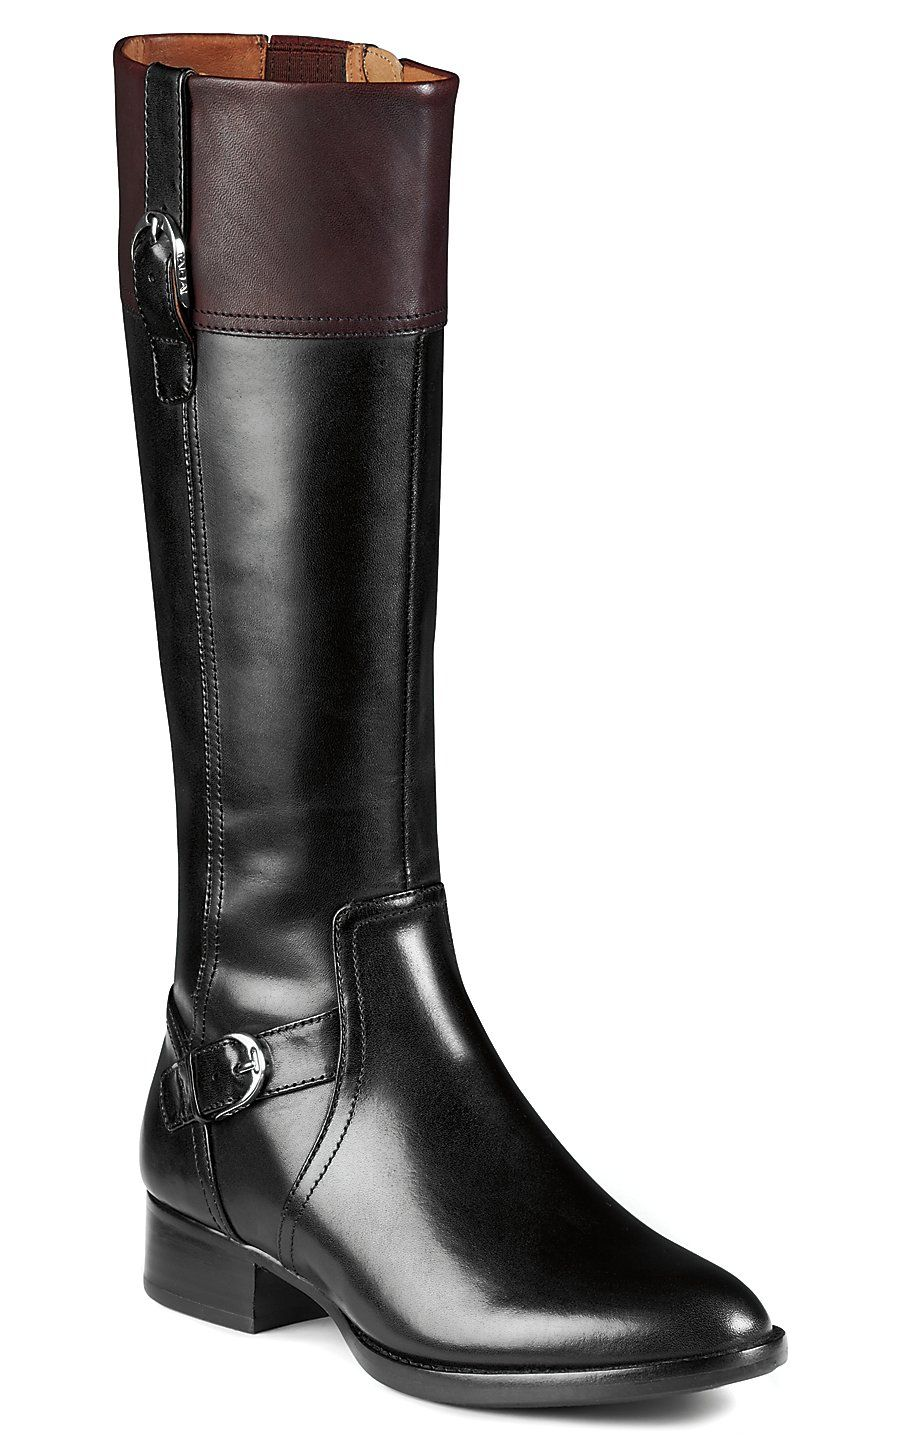 8ee31a17e51 Ariat Cordovan Women's Black w/Brown Cuff Classic Riding-Style Boot ...